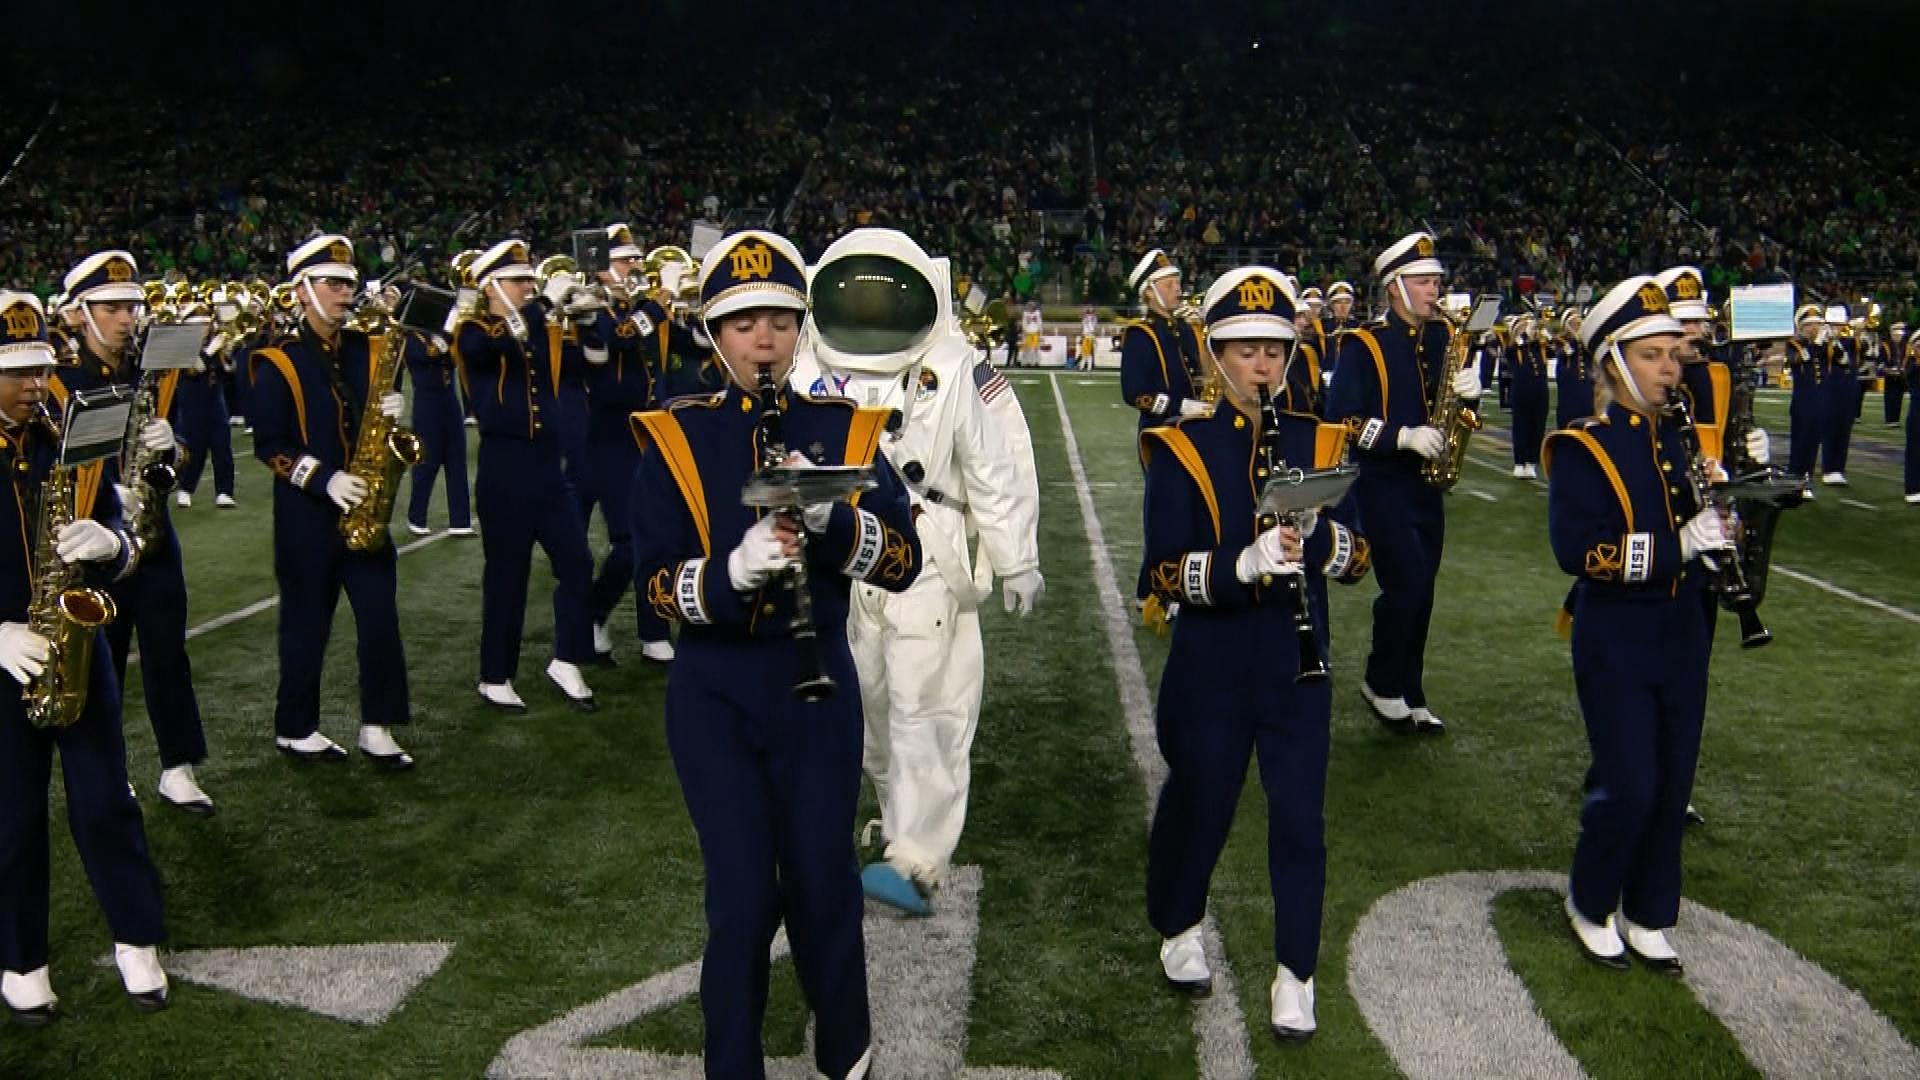 Notre Dame Marching Band plays musical tribute to 1969 moon landing